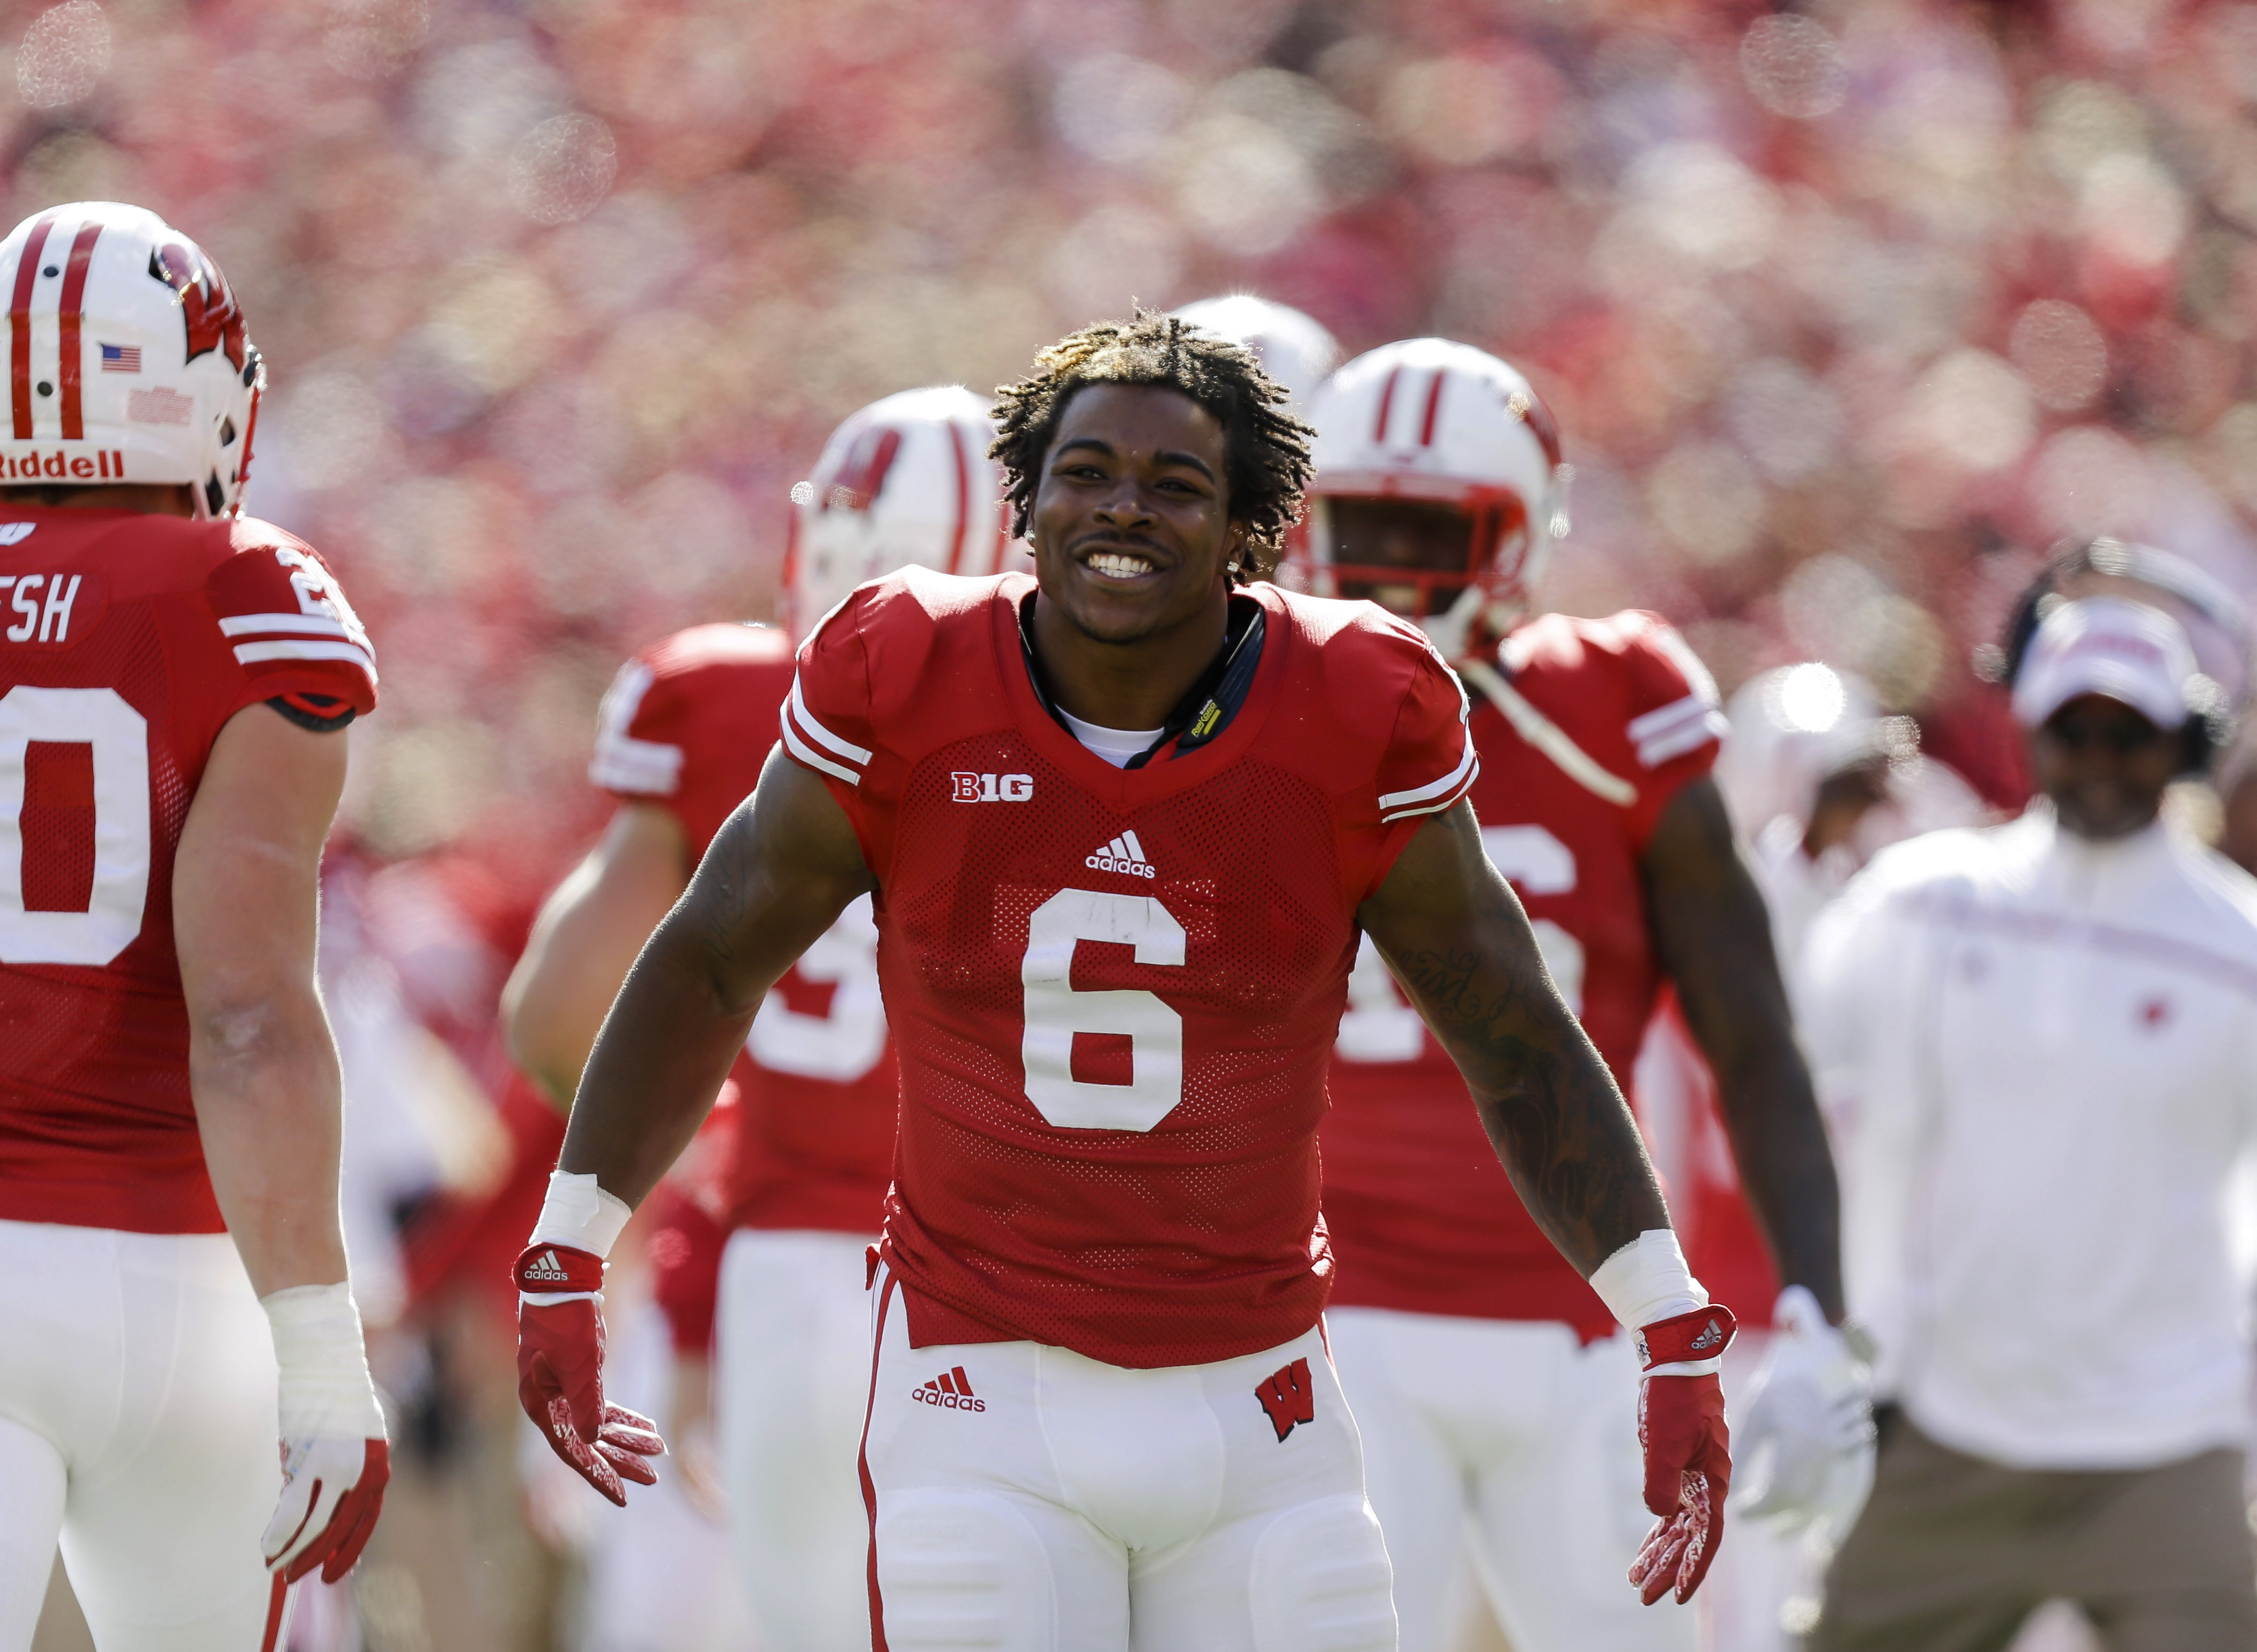 FILE - In this Oct. 17, 2015 file photo, Wisconsin running back Corey Clement (6) is shown during the second half of an NCAA college football game against Purdue, in Madison, Wis. Clement said he has a clean bill of health, and that hes planning to train